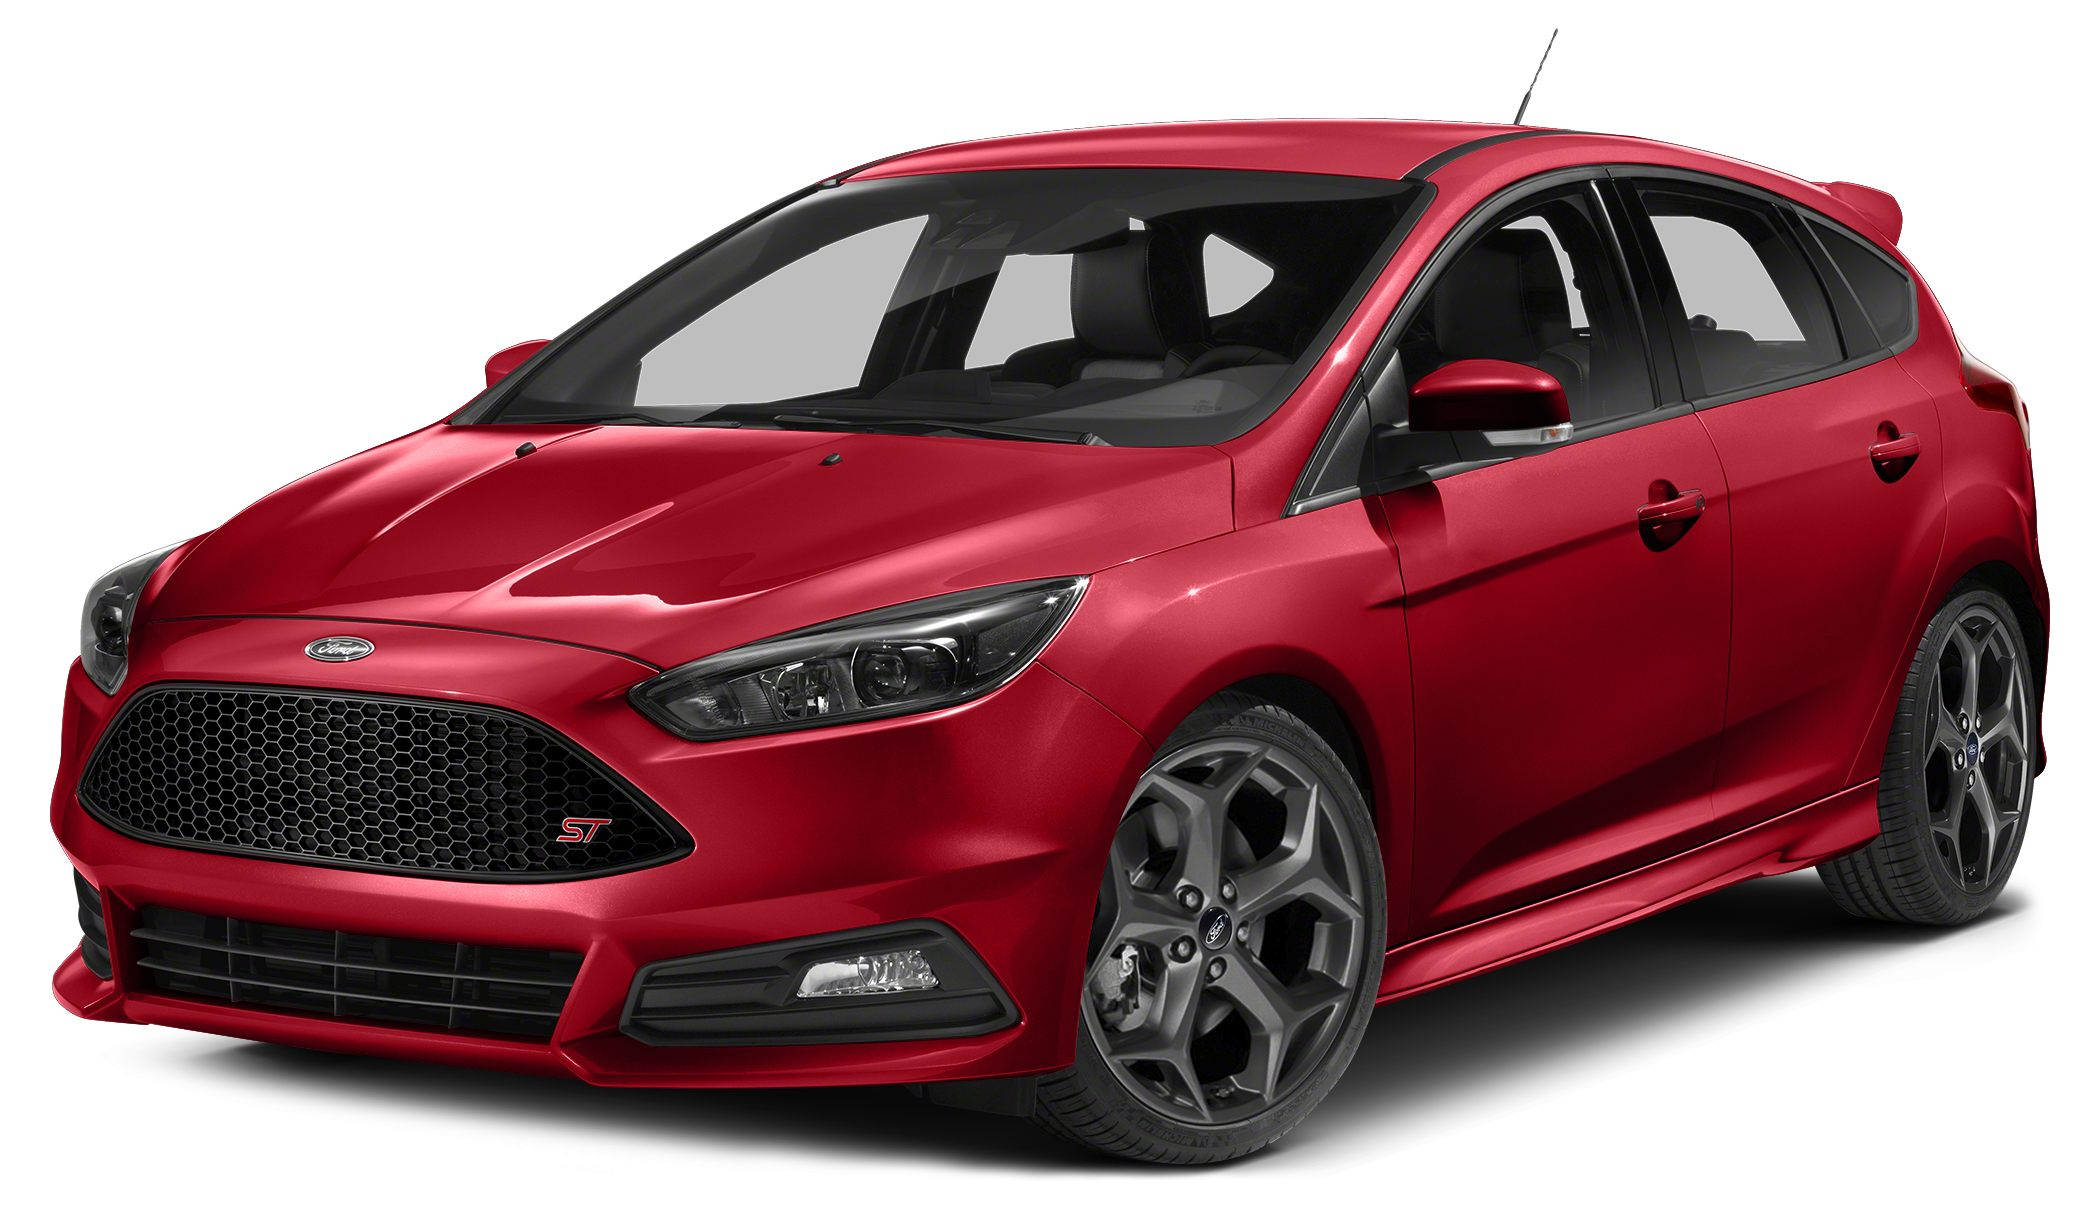 New Facelift 2015 Focus St 3 Review Images Info Page 2